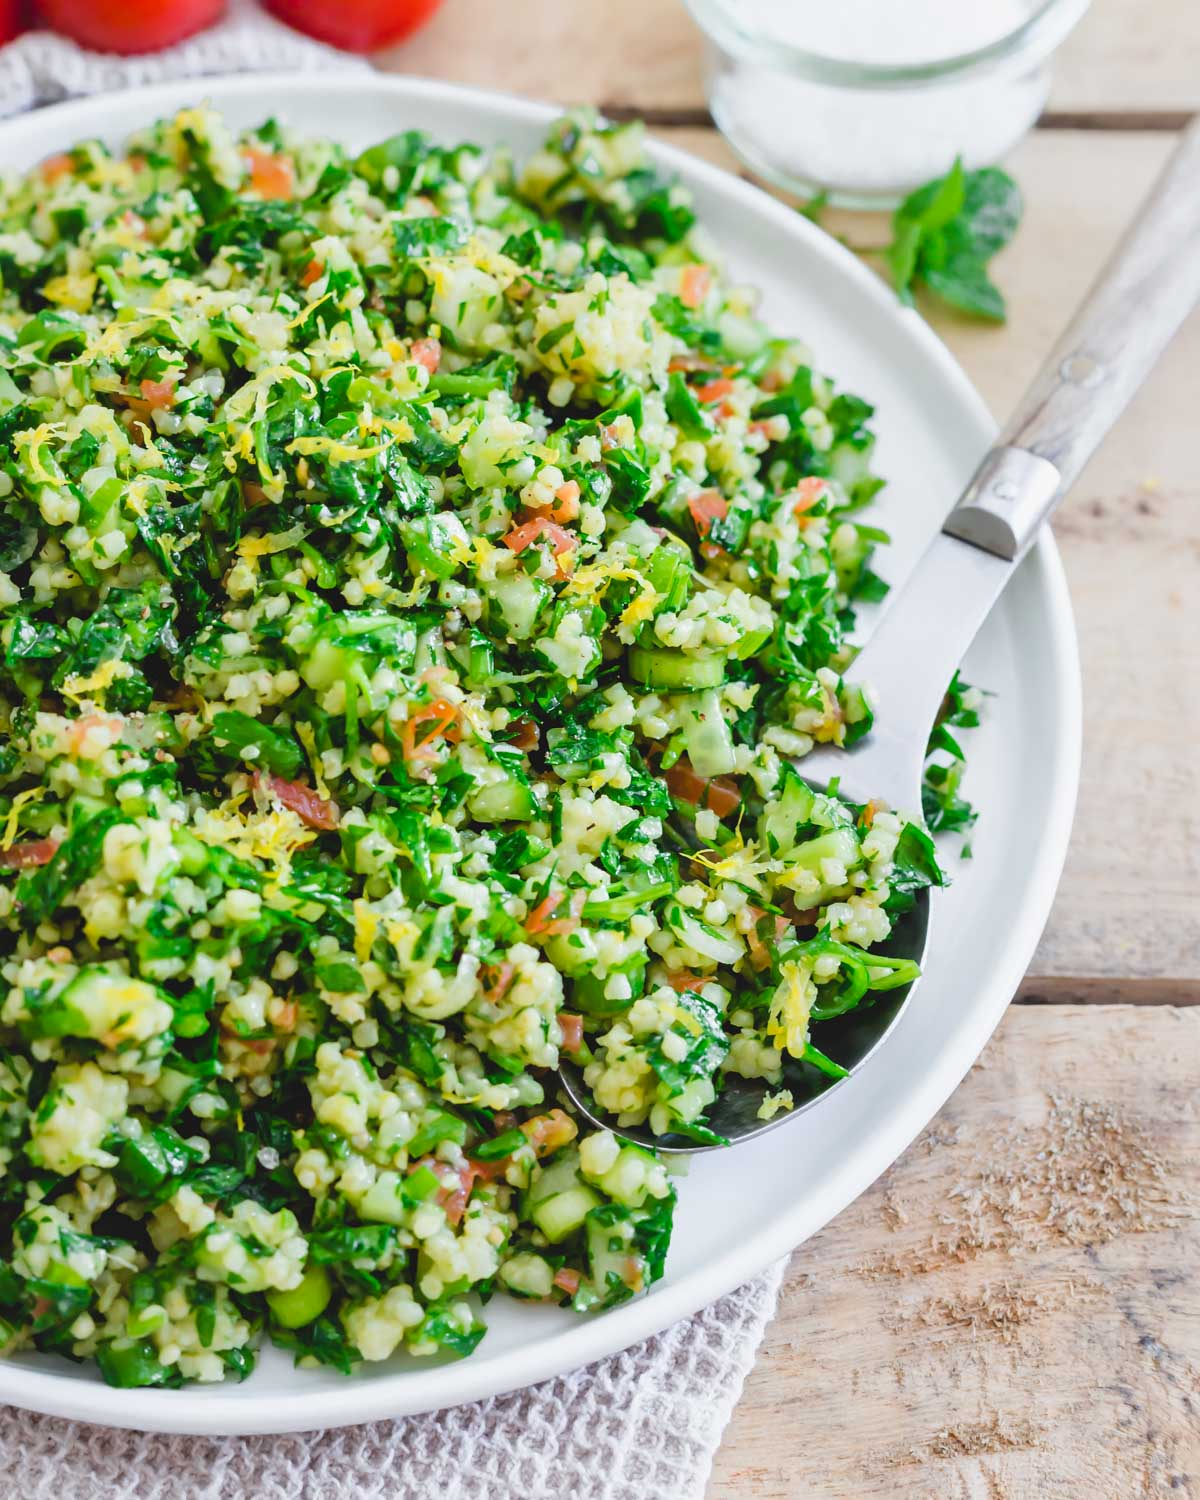 Millet tabbouleh recipe on a serving plate with a serving spoon.